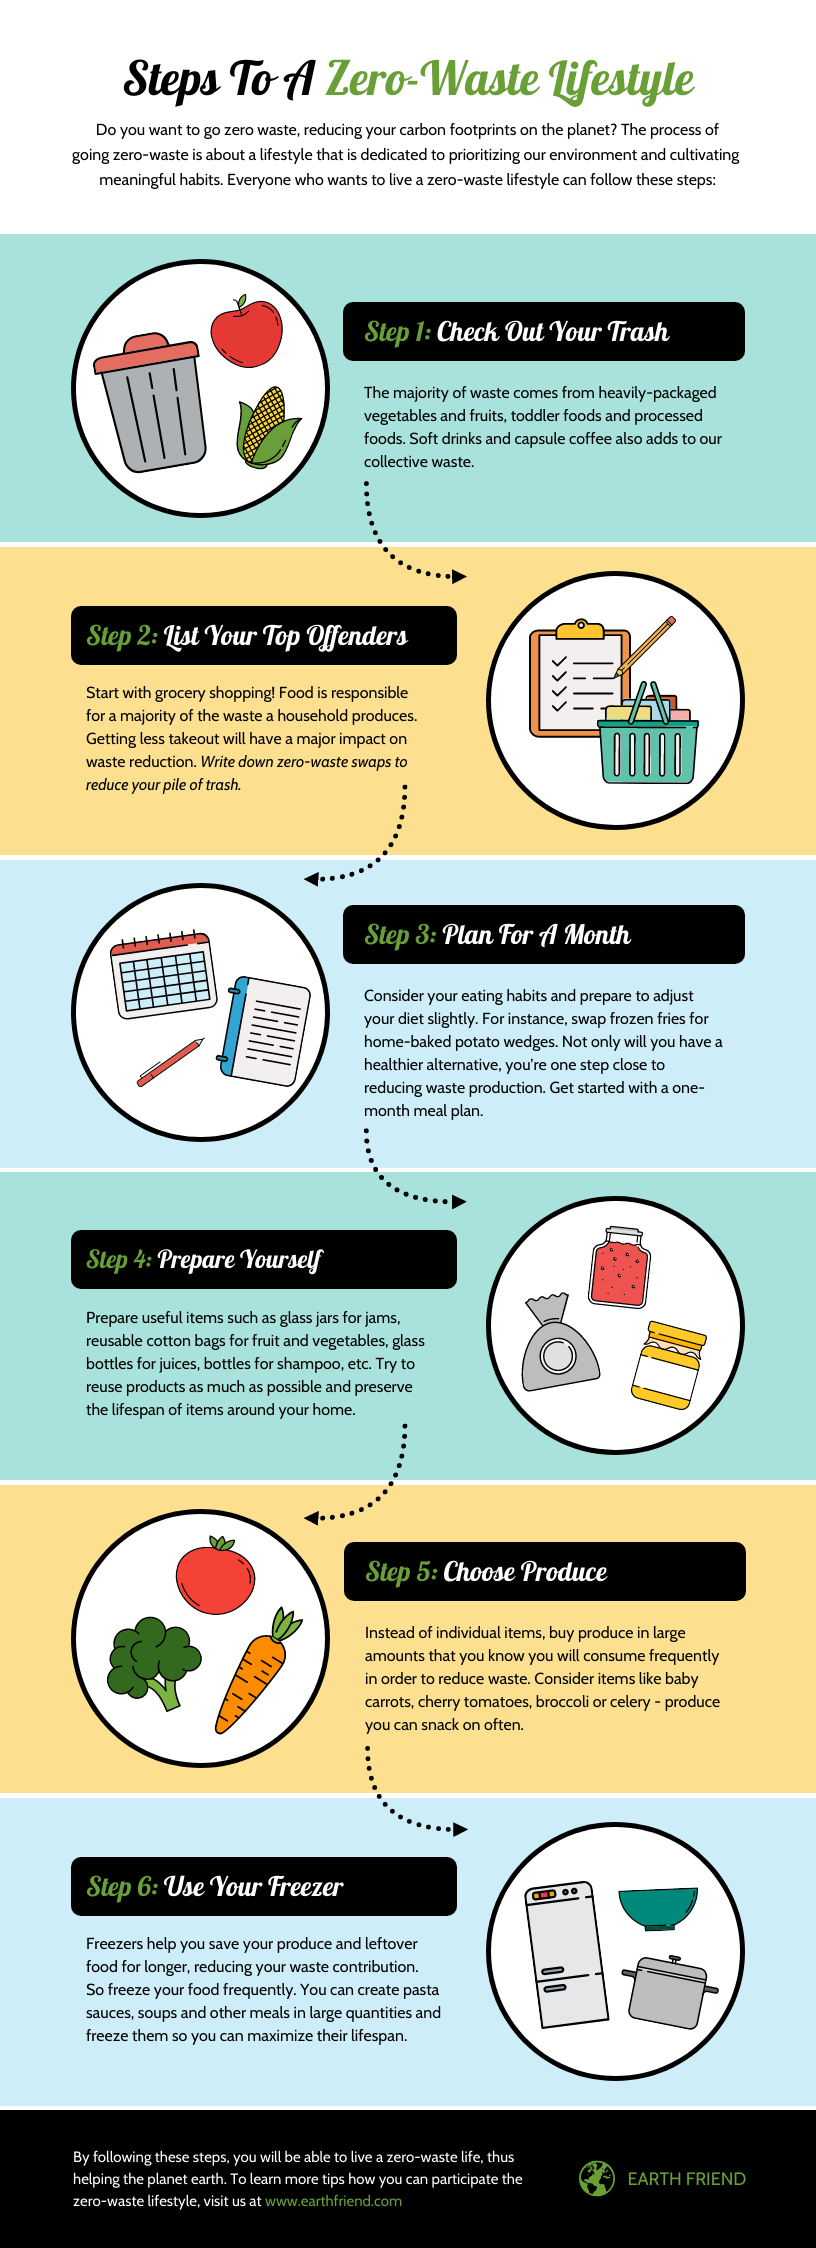 6 Steps To A Zero-Waste Lifestyle Infographic Template